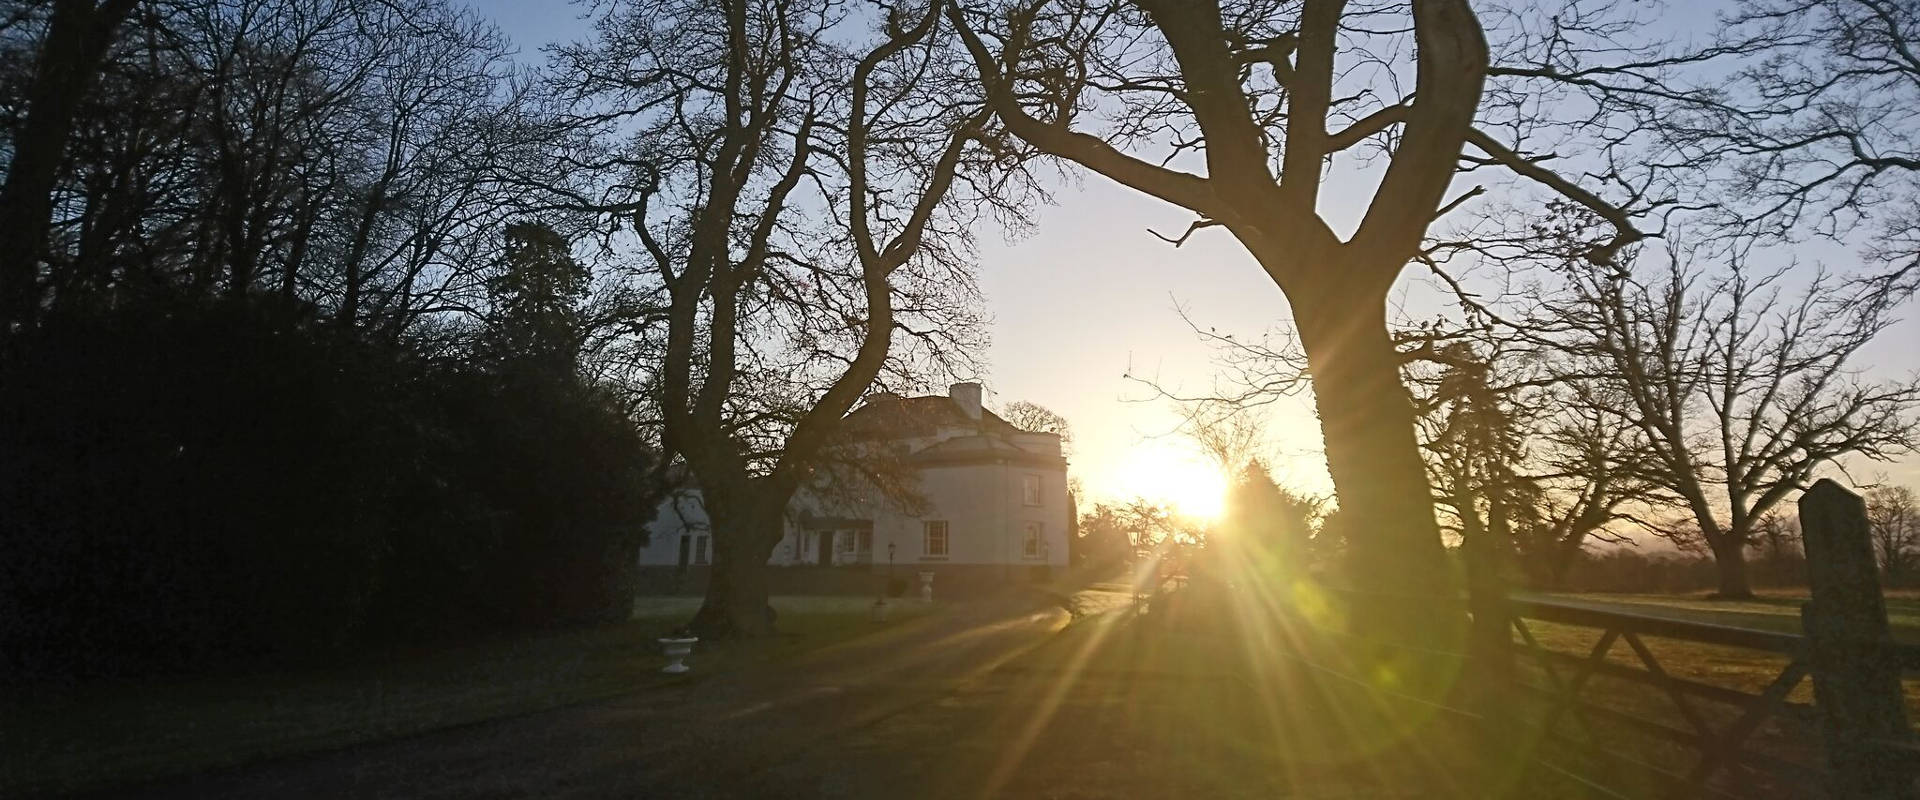 Morning sun on Leixlip Manor House